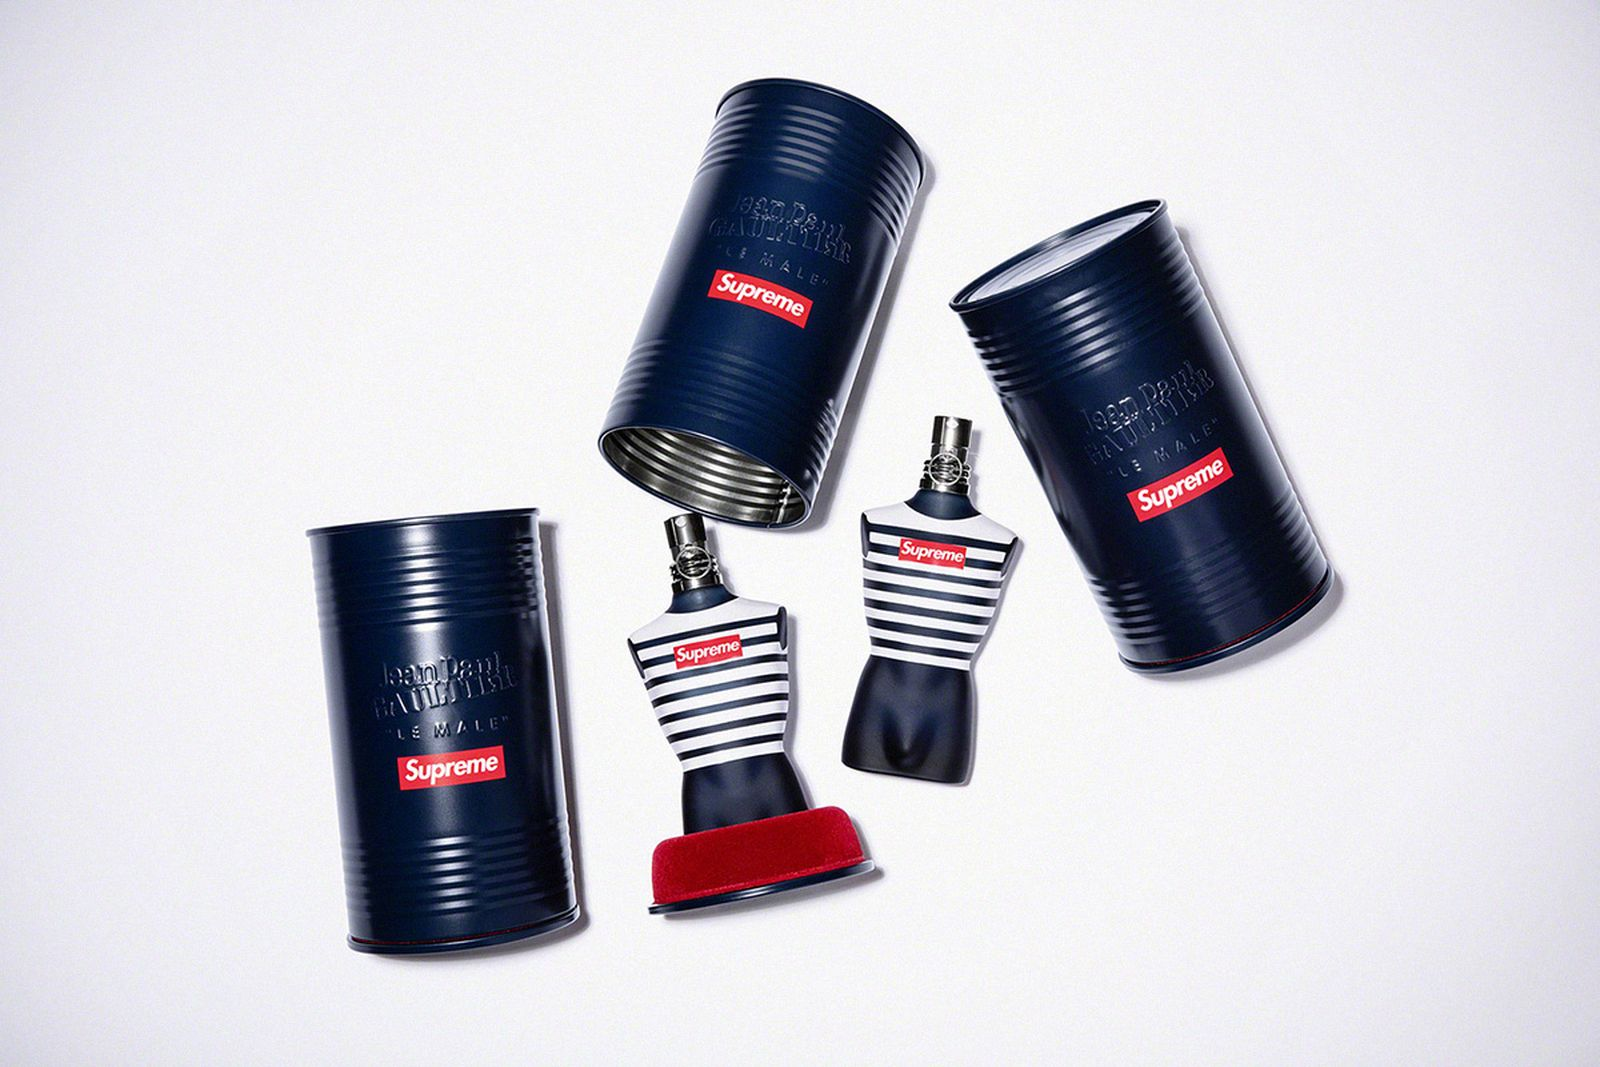 gaultiers le male scent is a supreme collectible for the ages main jean-paul gaultier